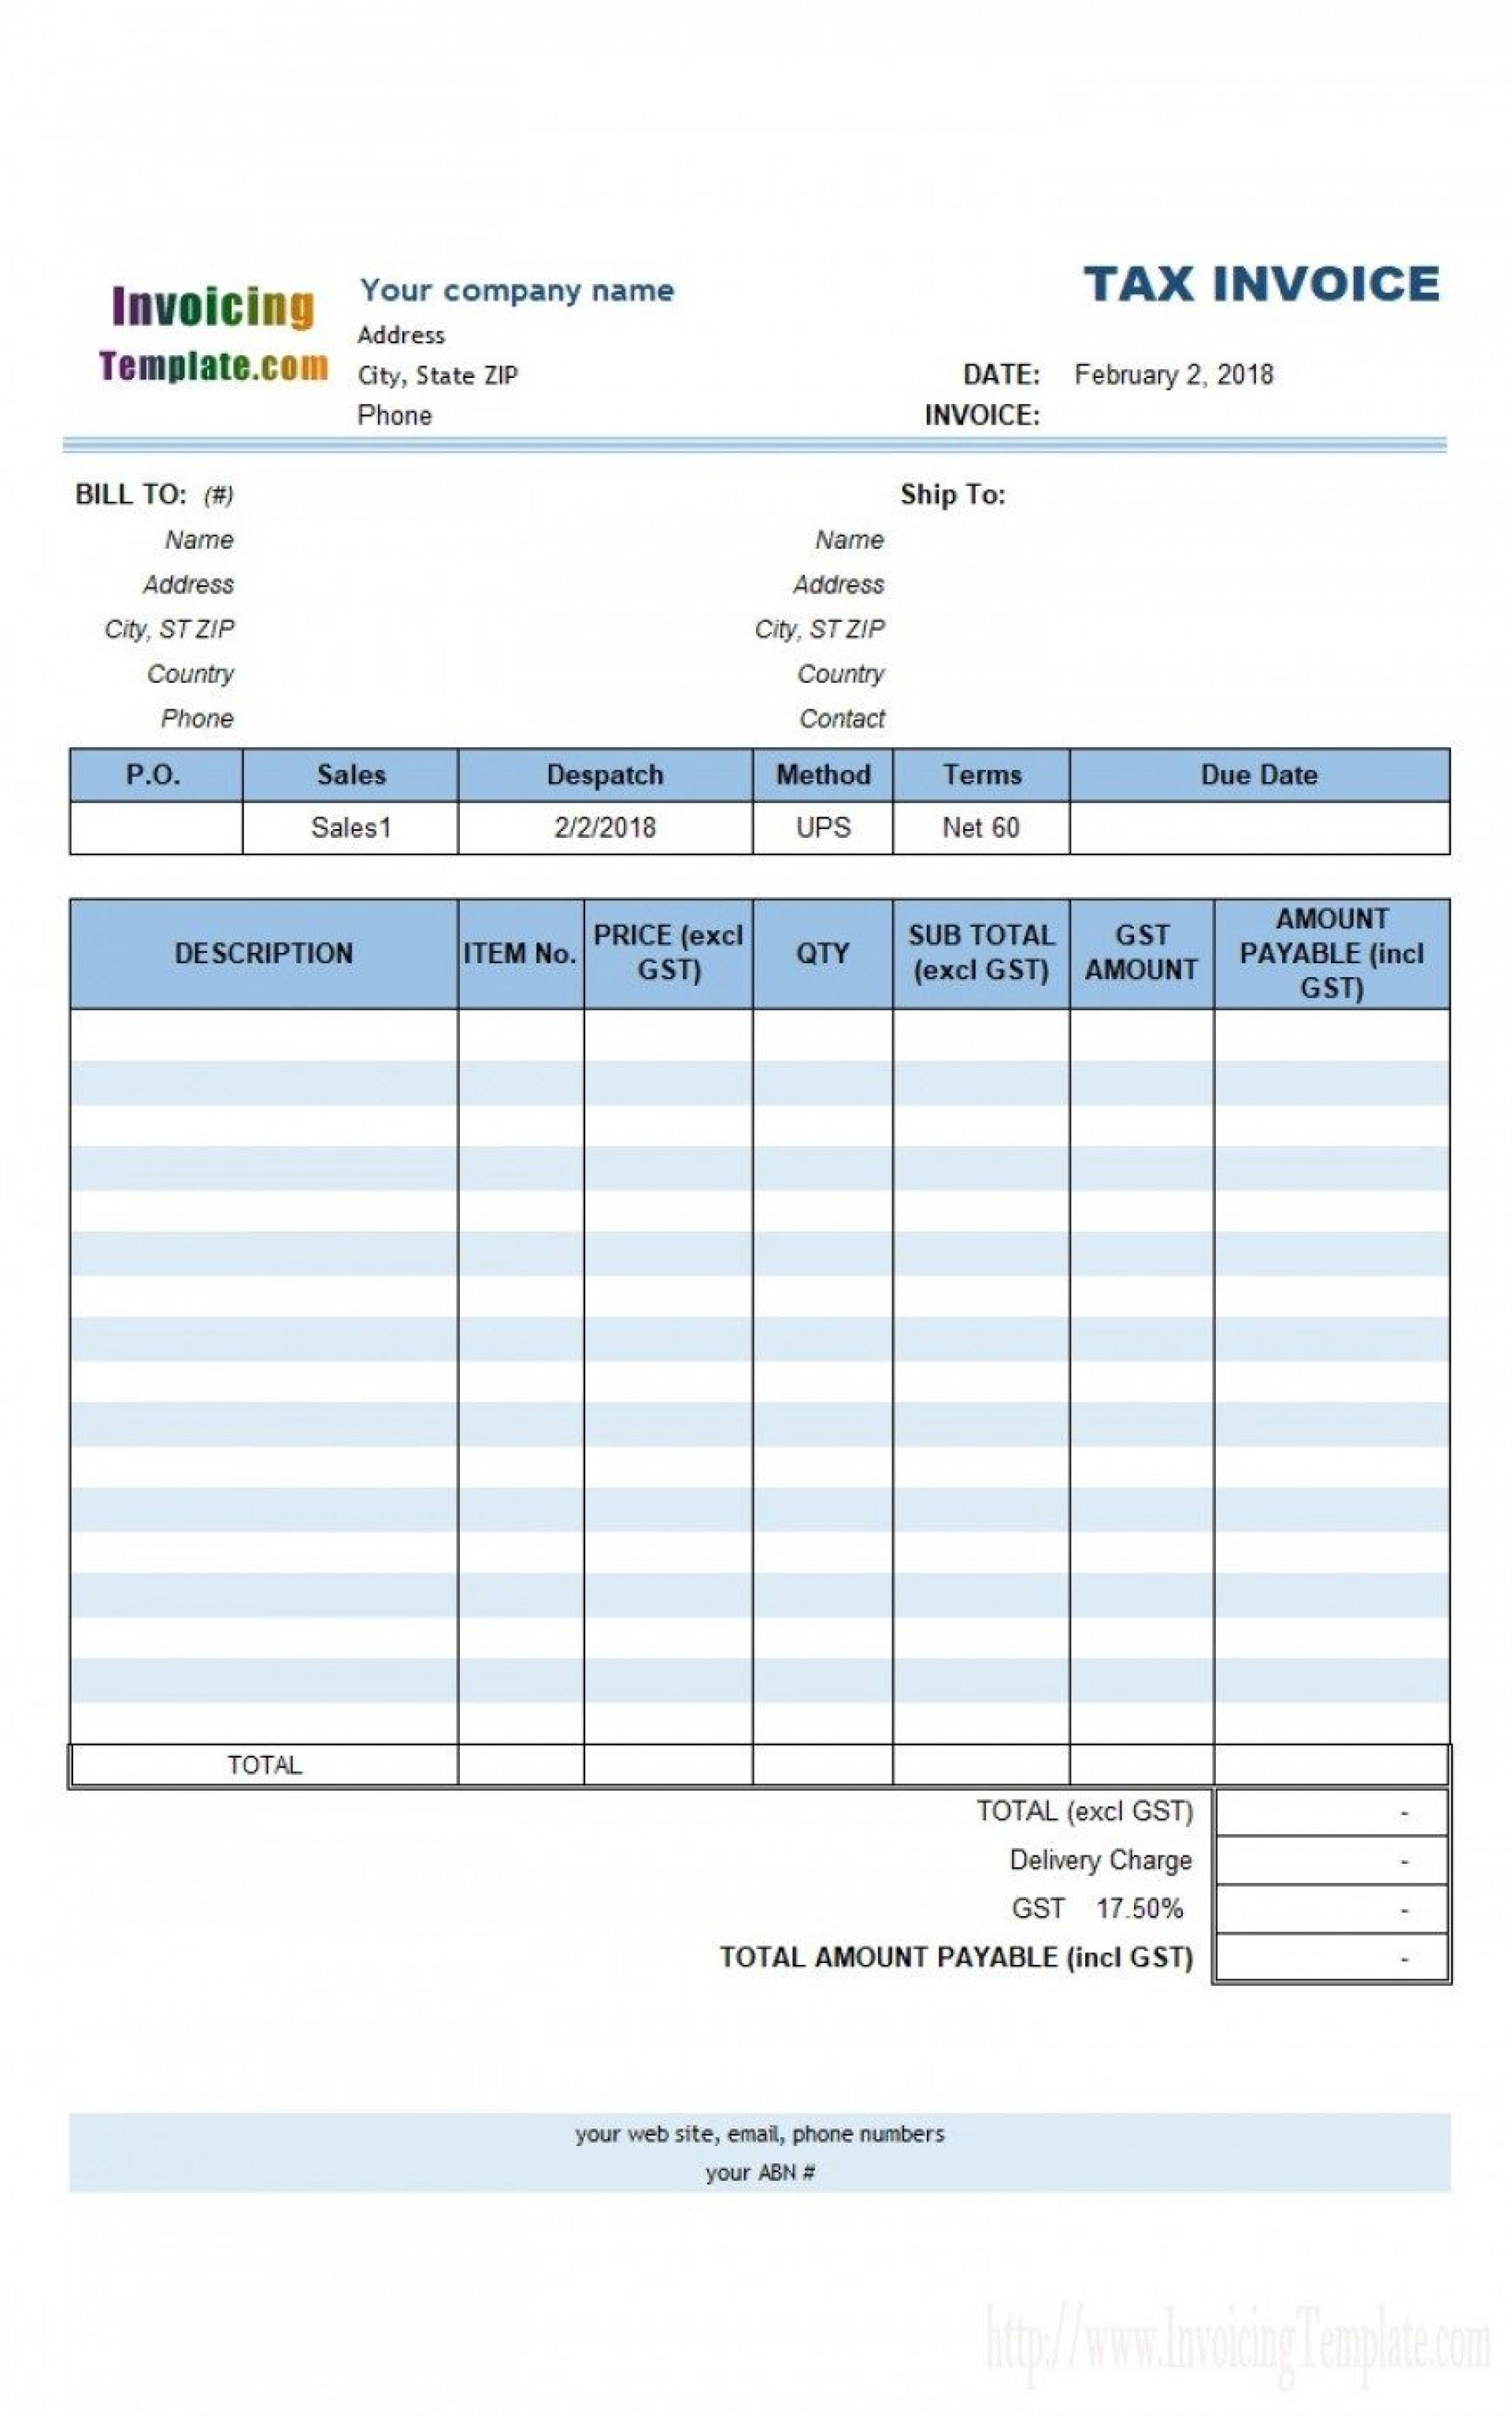 003 Formidable Free Excel Invoice Template Gst India Concept 1920